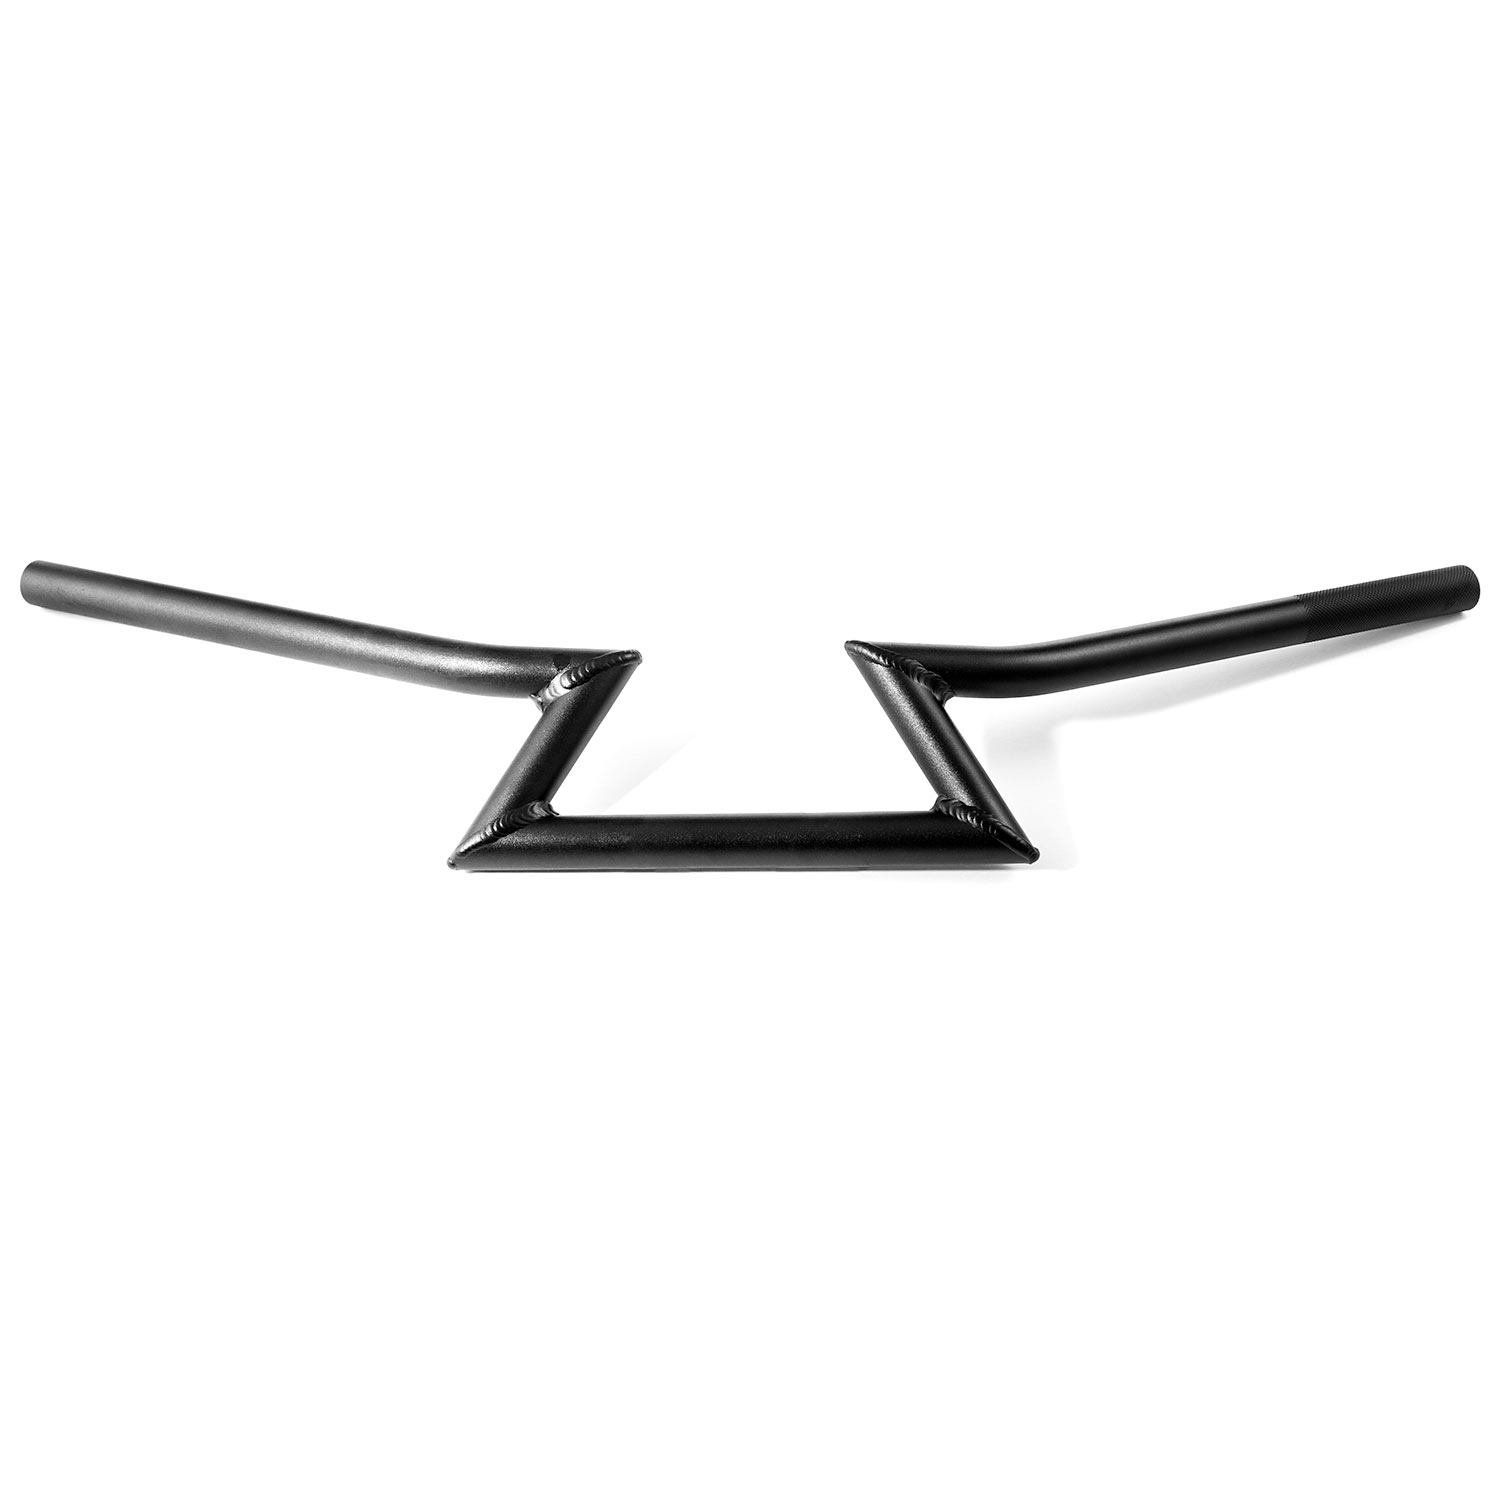 "Motorcycle 7/8"" Inch Handlebars Zed Bar Black For Cafe Racers Cruisers Harleys for KTM Duke 620 640 690 - image 5 of 5"